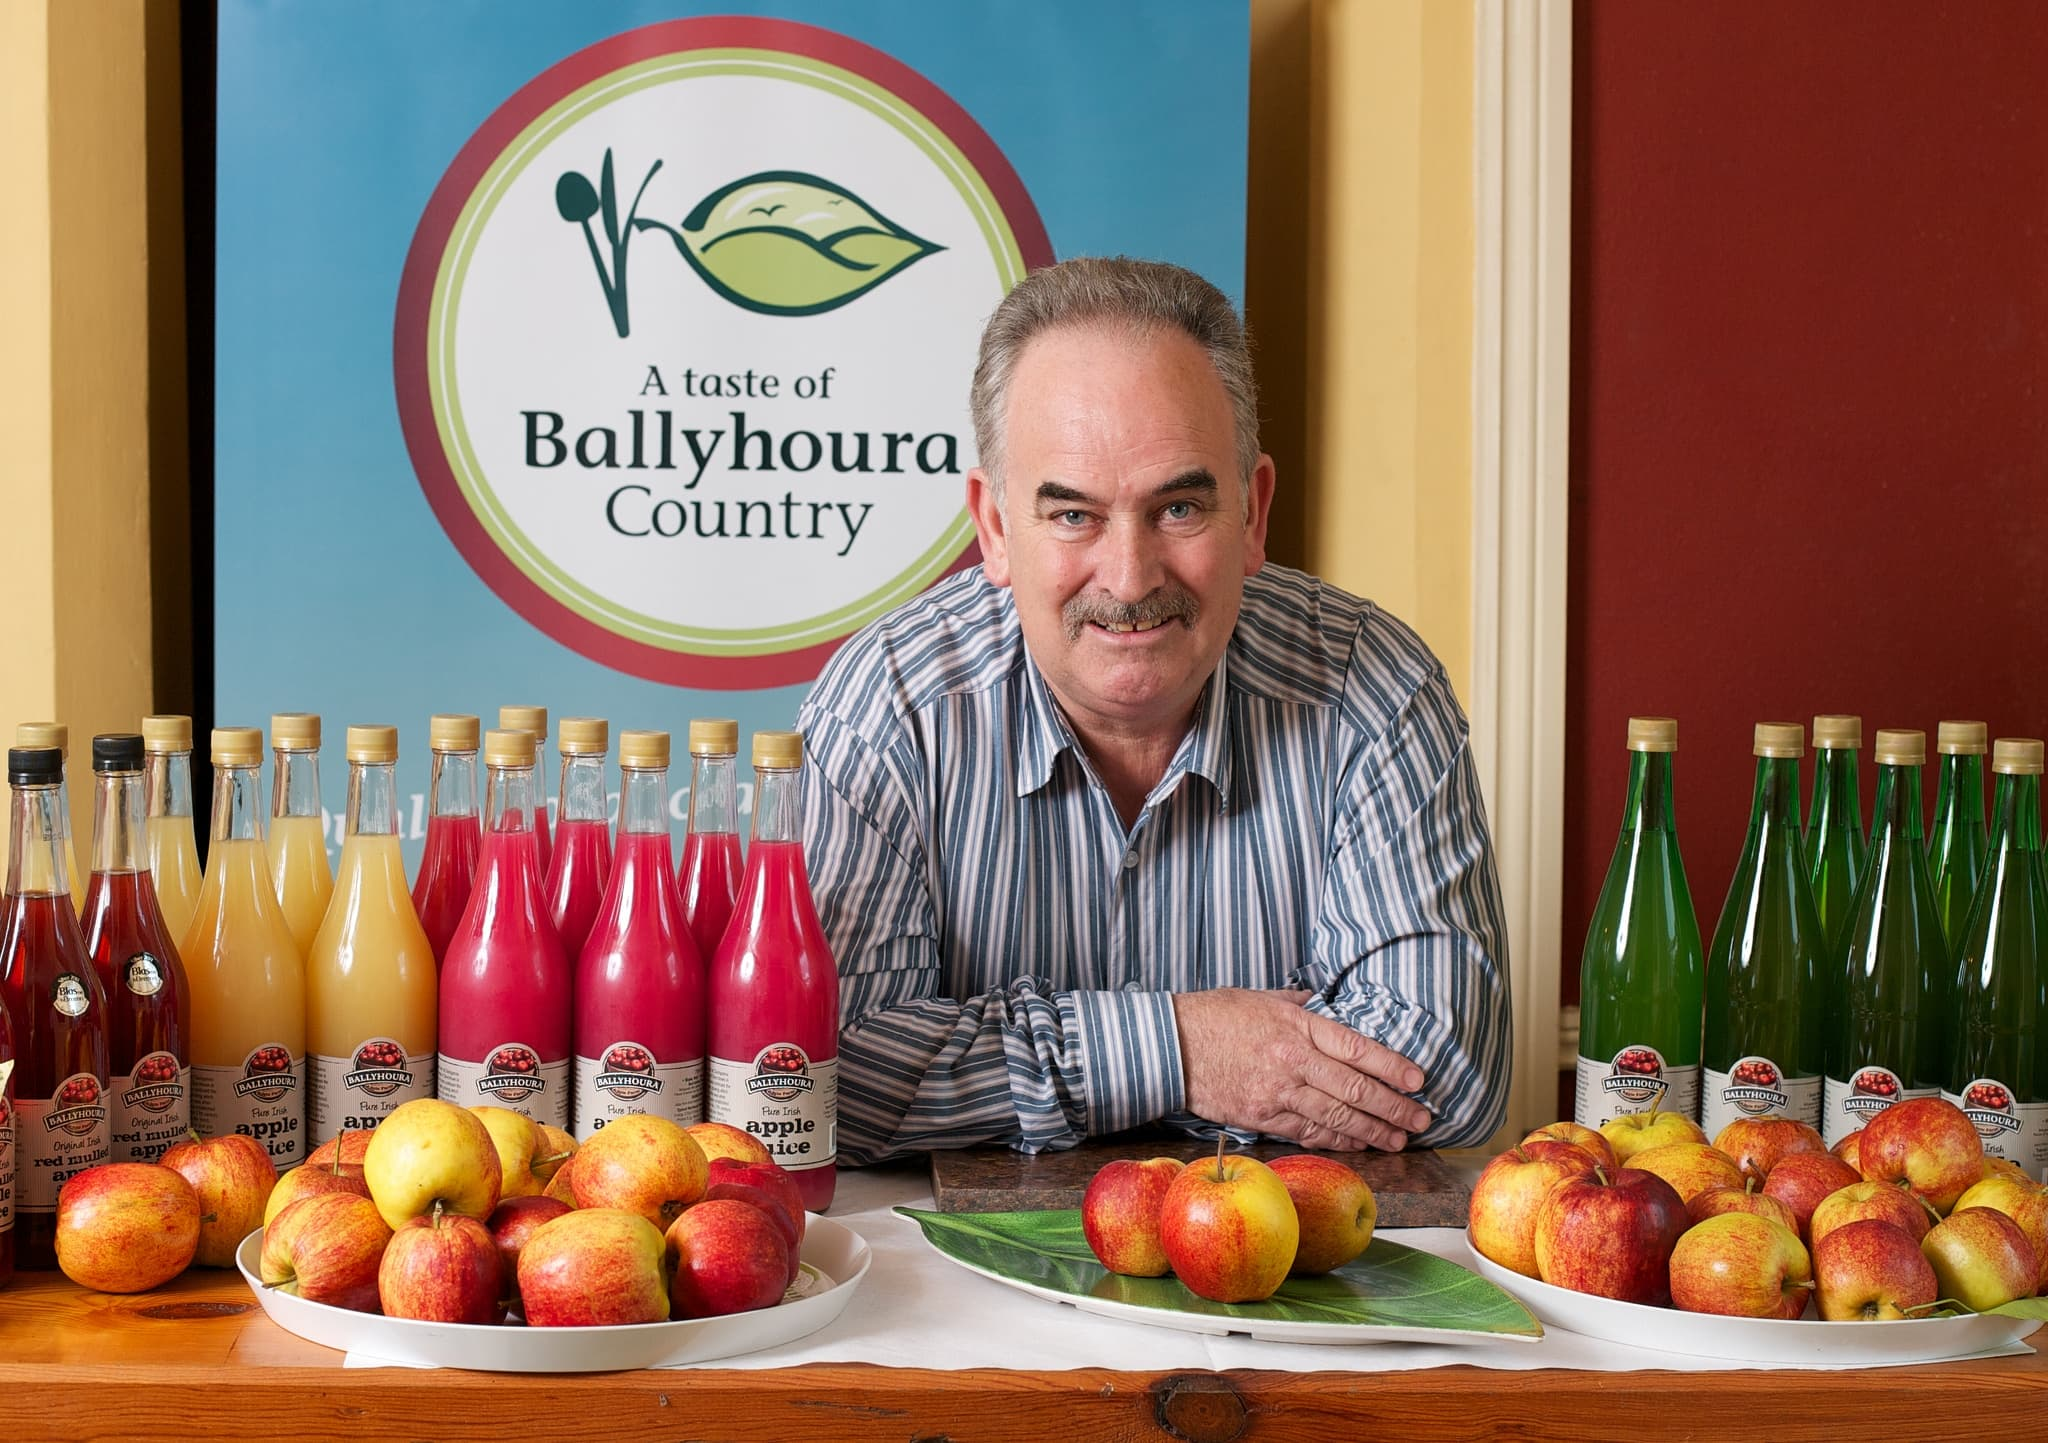 A Taste of Ballyhoura Food Brand Ballyhoura Apple Juice